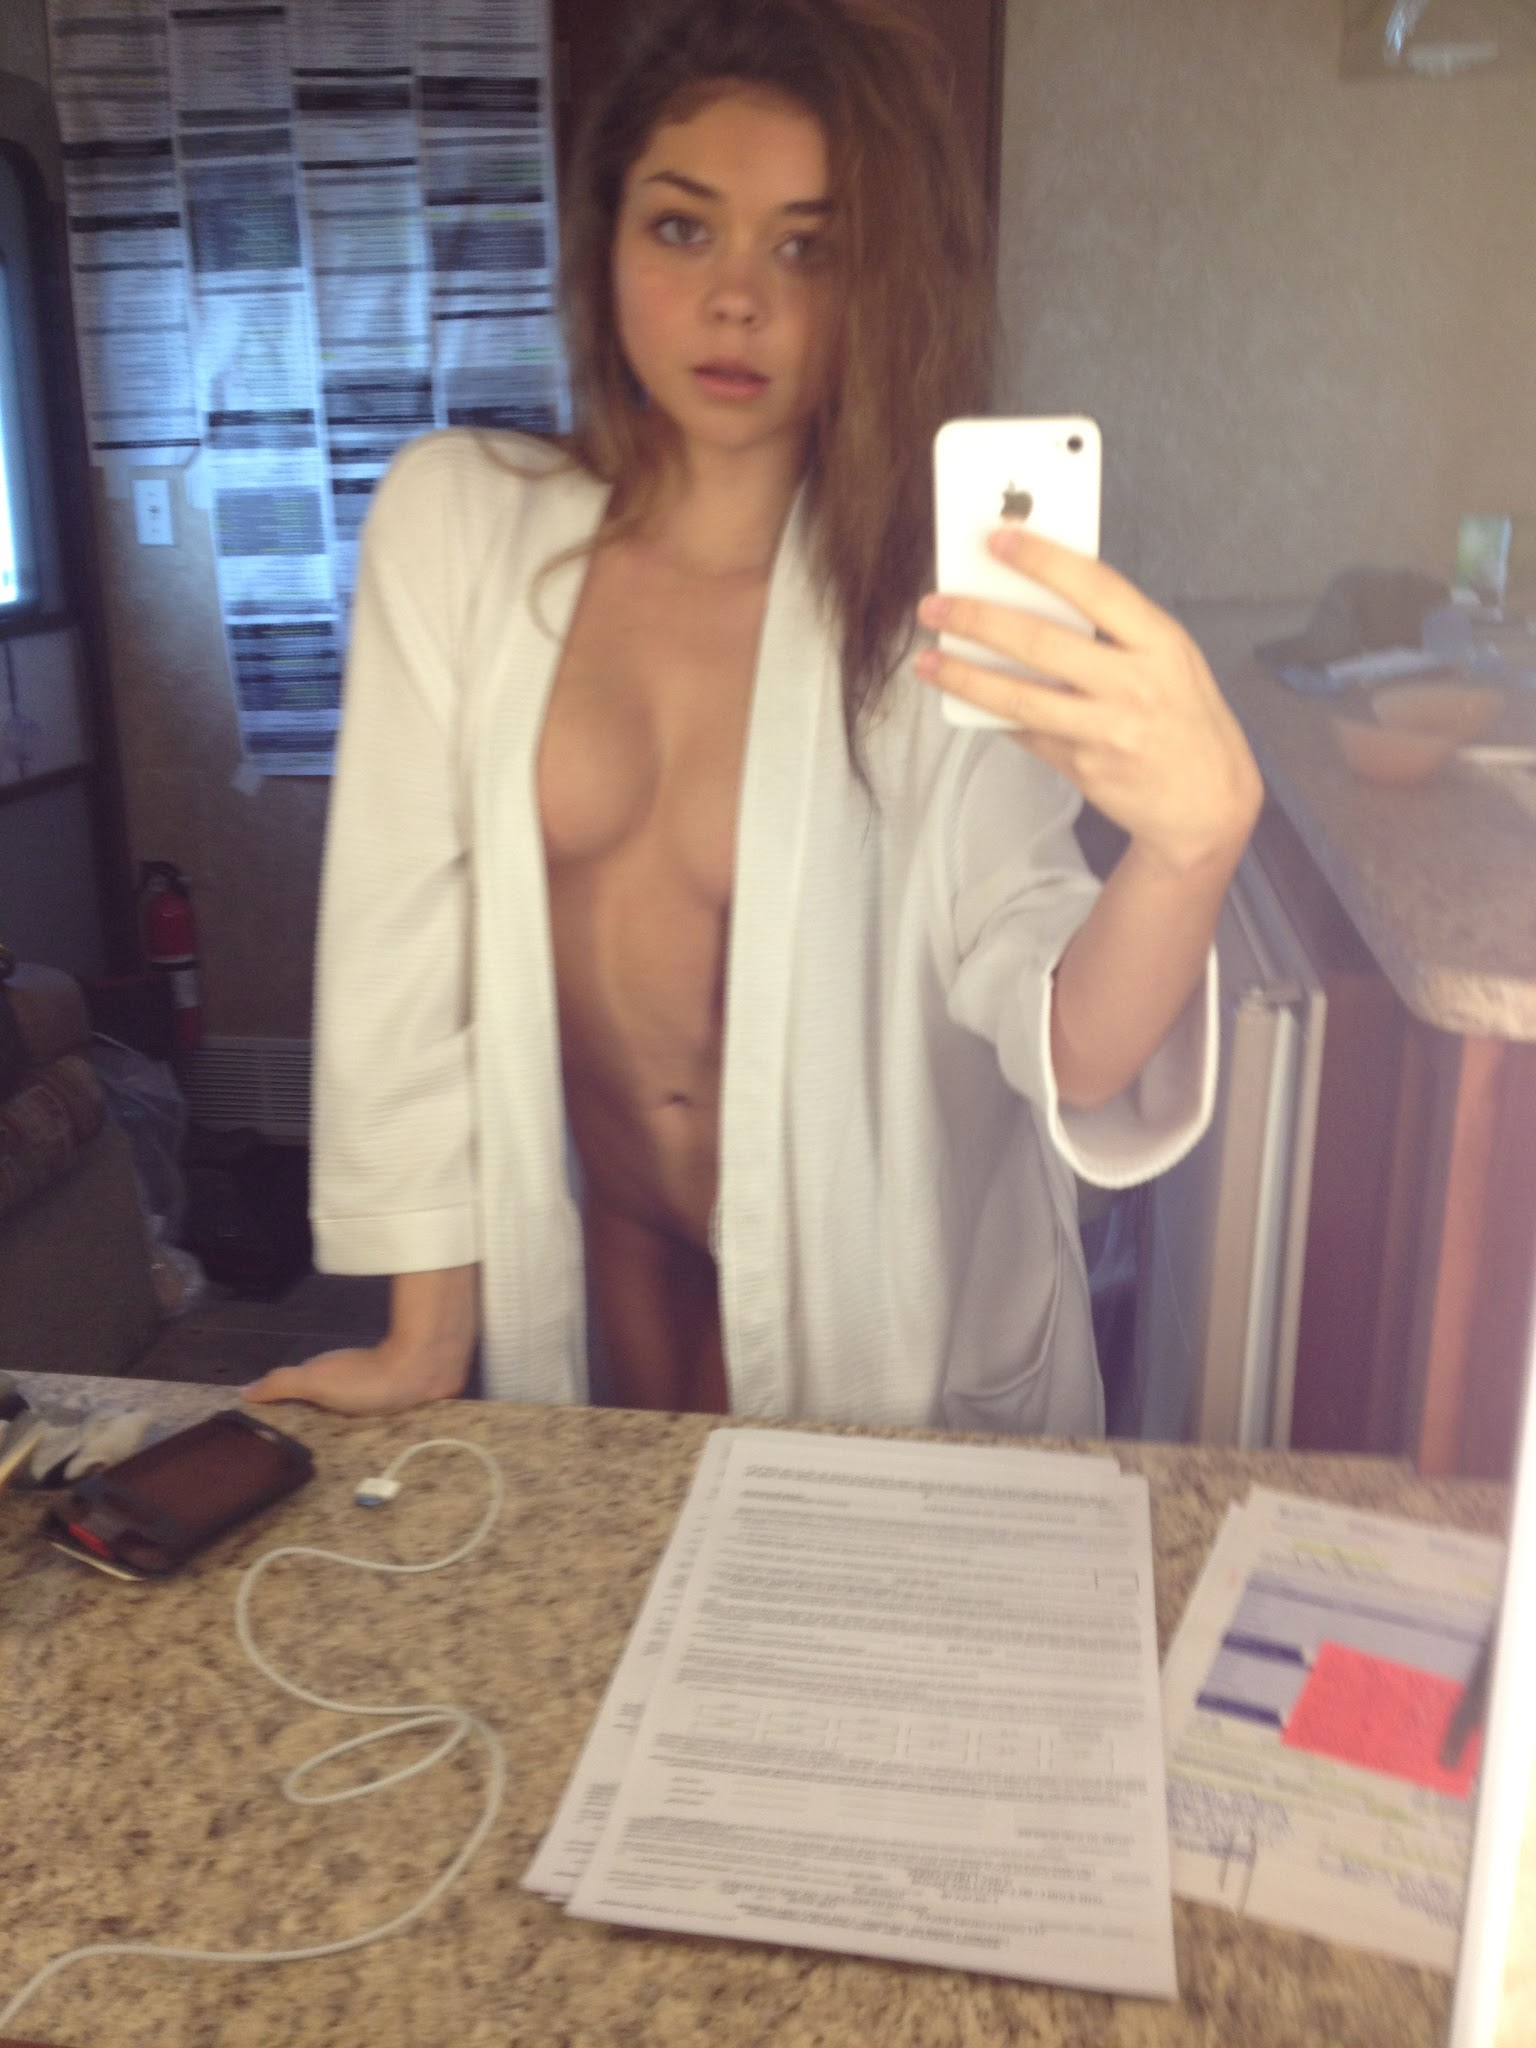 XXX Sarah Hyland nudes (64 photo), Topless, Is a cute, Boobs, swimsuit 2020